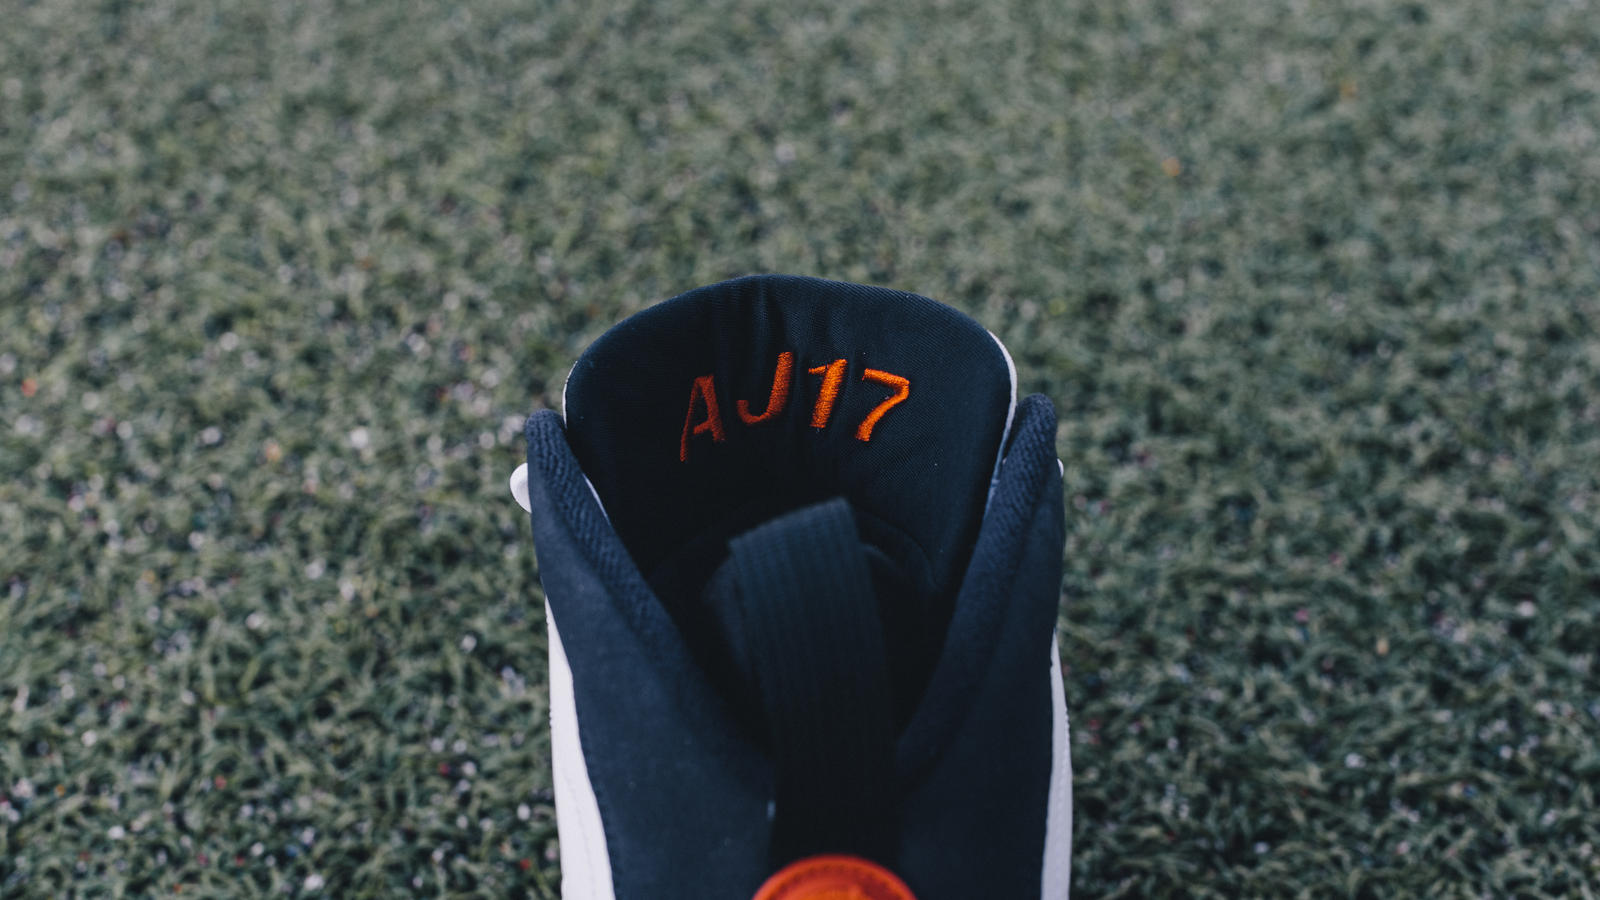 Alshon Jeffrey Air Jordan IX PE Cleat